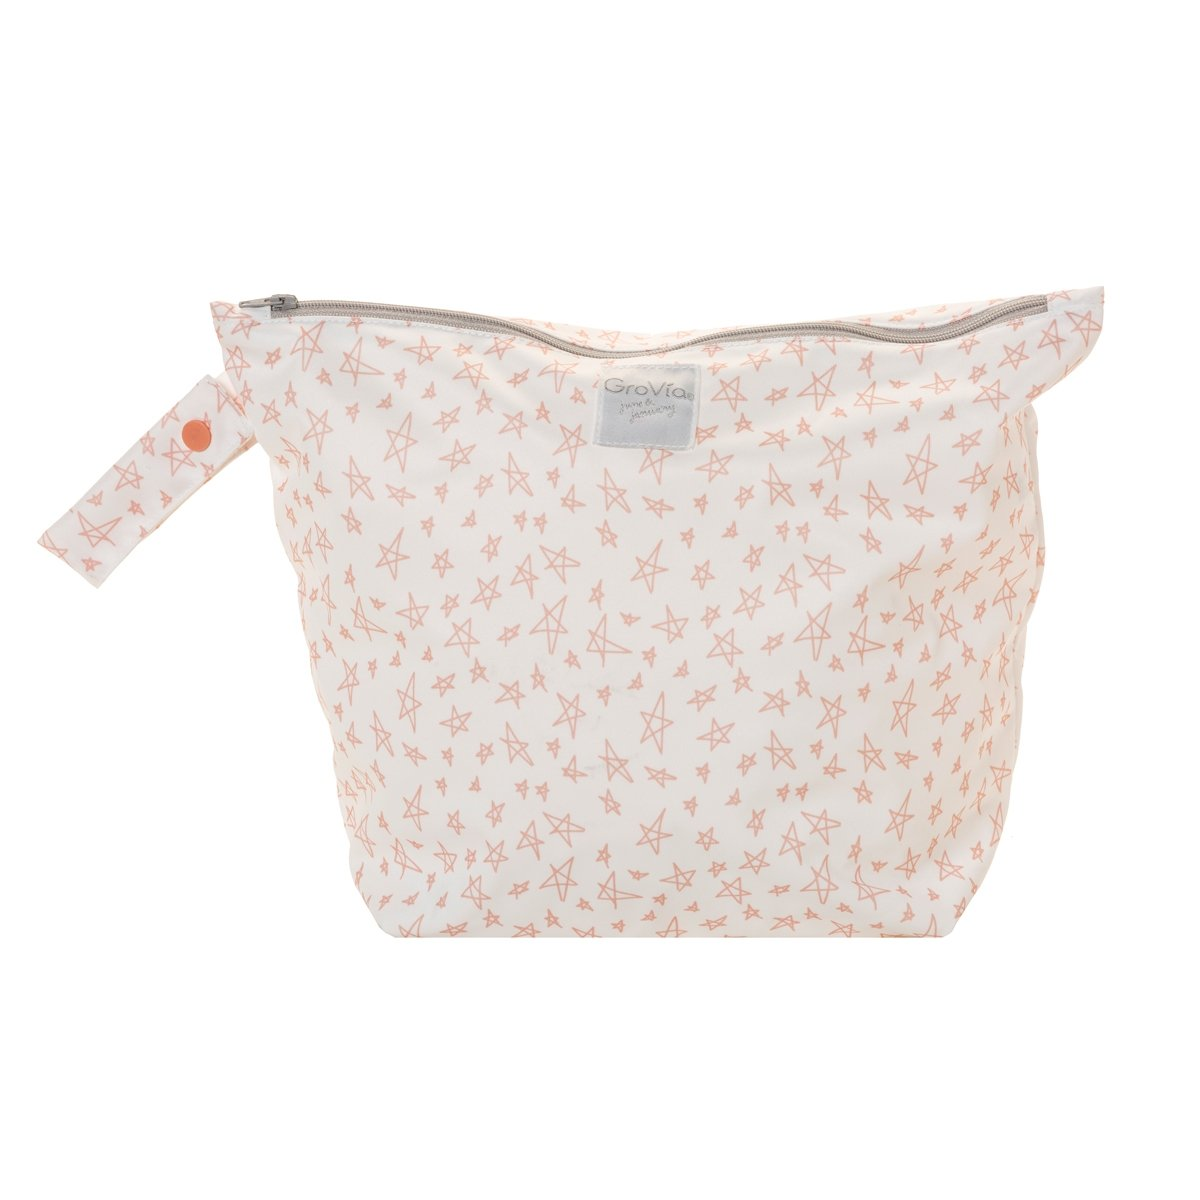 GroVia zipped wet bag - Grapefruit Stars